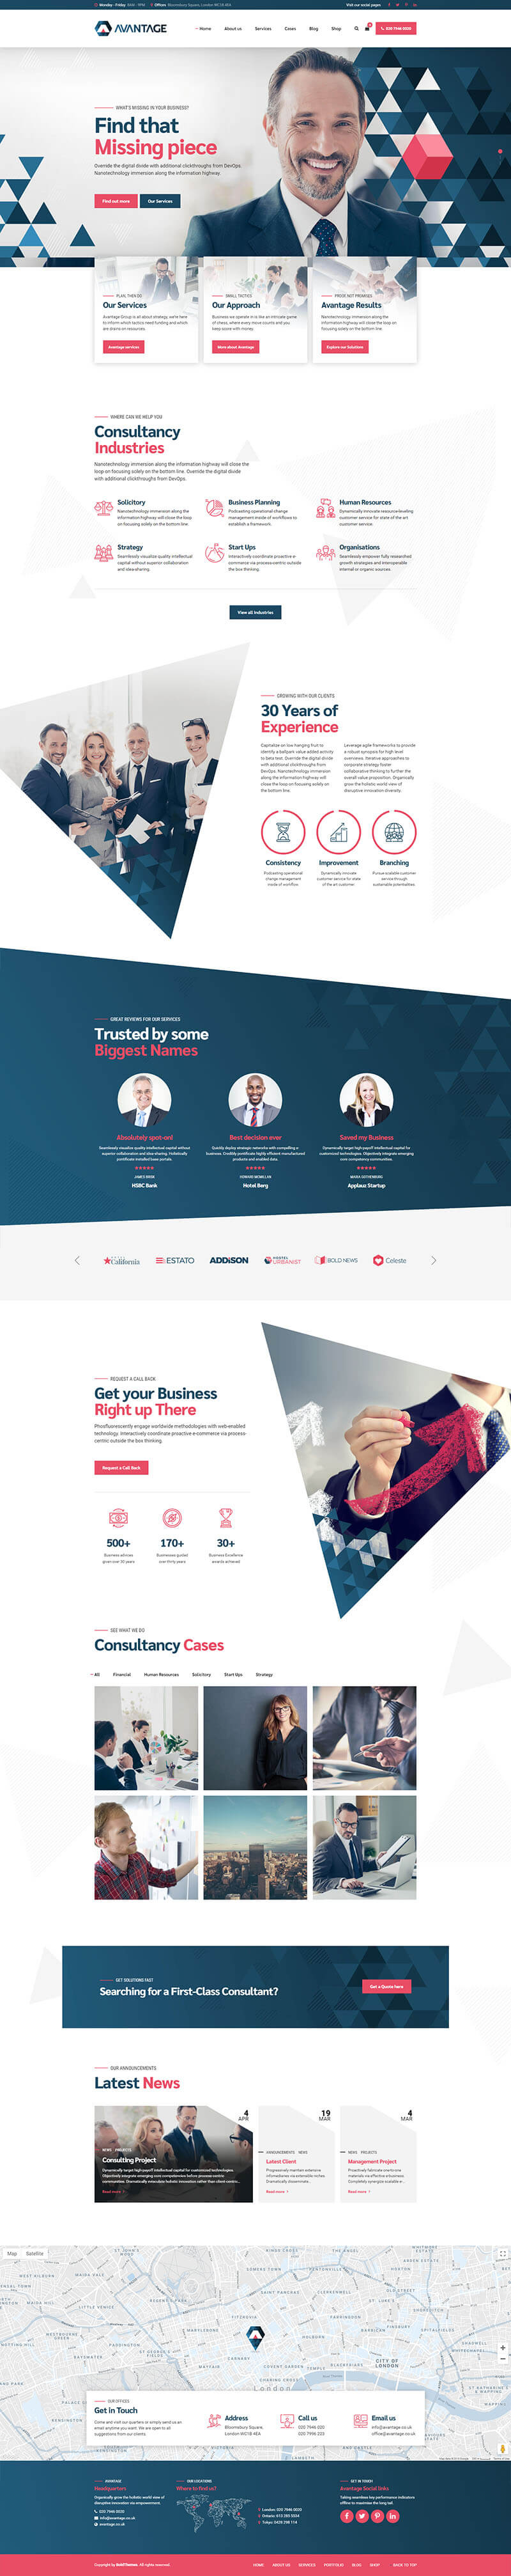 http://avantage.bold-themes.com/wp-content/uploads/2019/05/demo-01-business.jpg